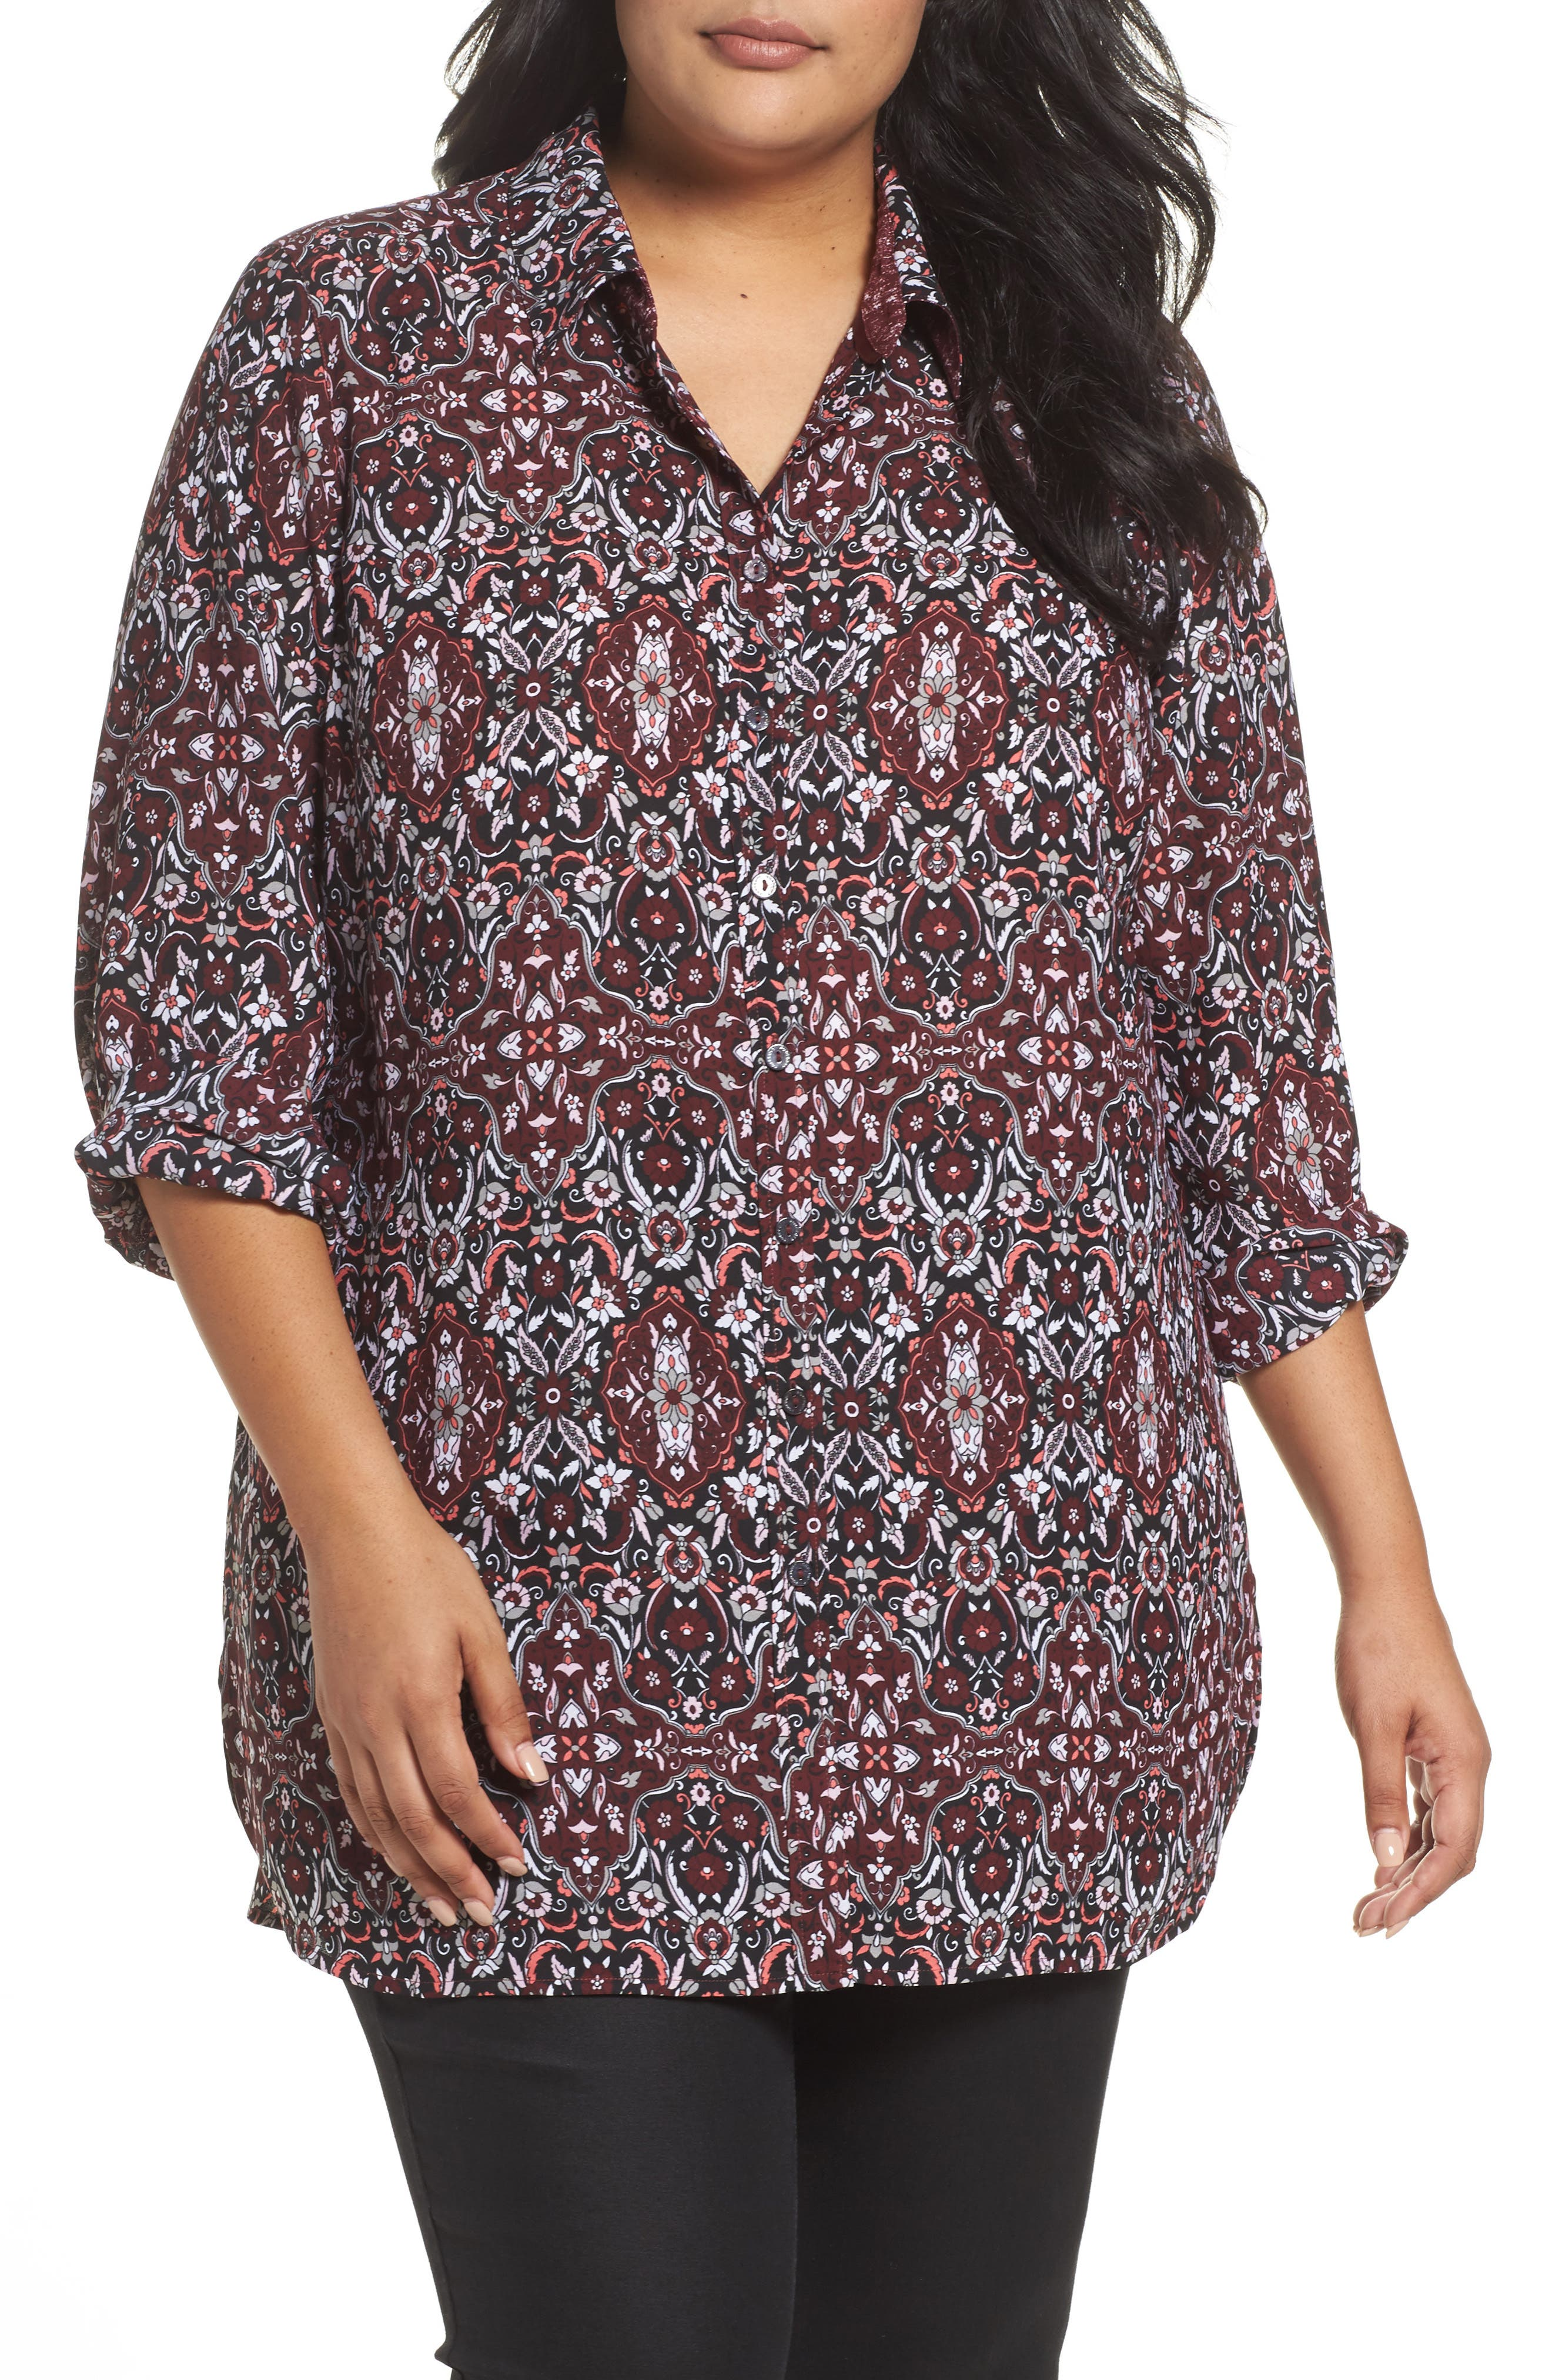 Alternate Image 1 Selected - Foxcroft Jade Heirloom Paisley Shirt (Plus Size)